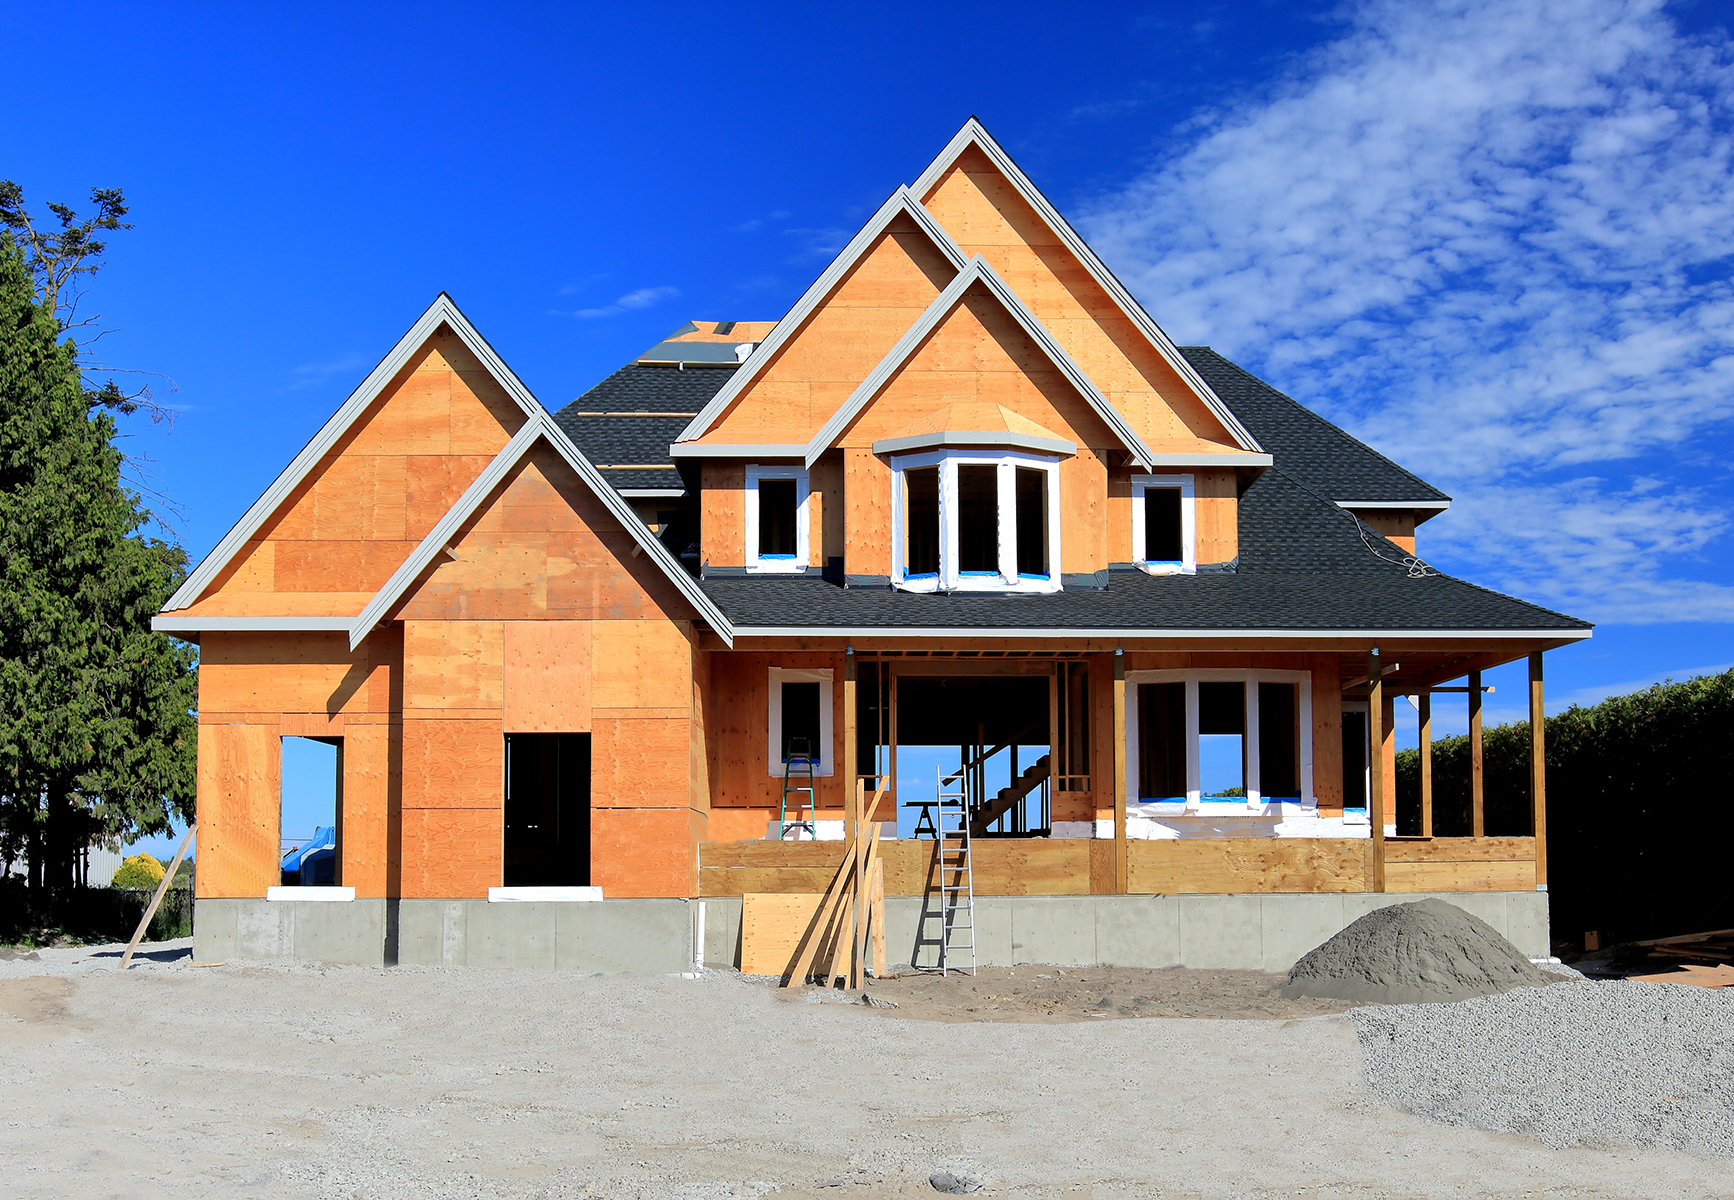 Country-Lumber-Plywood-Home-Building.jpg